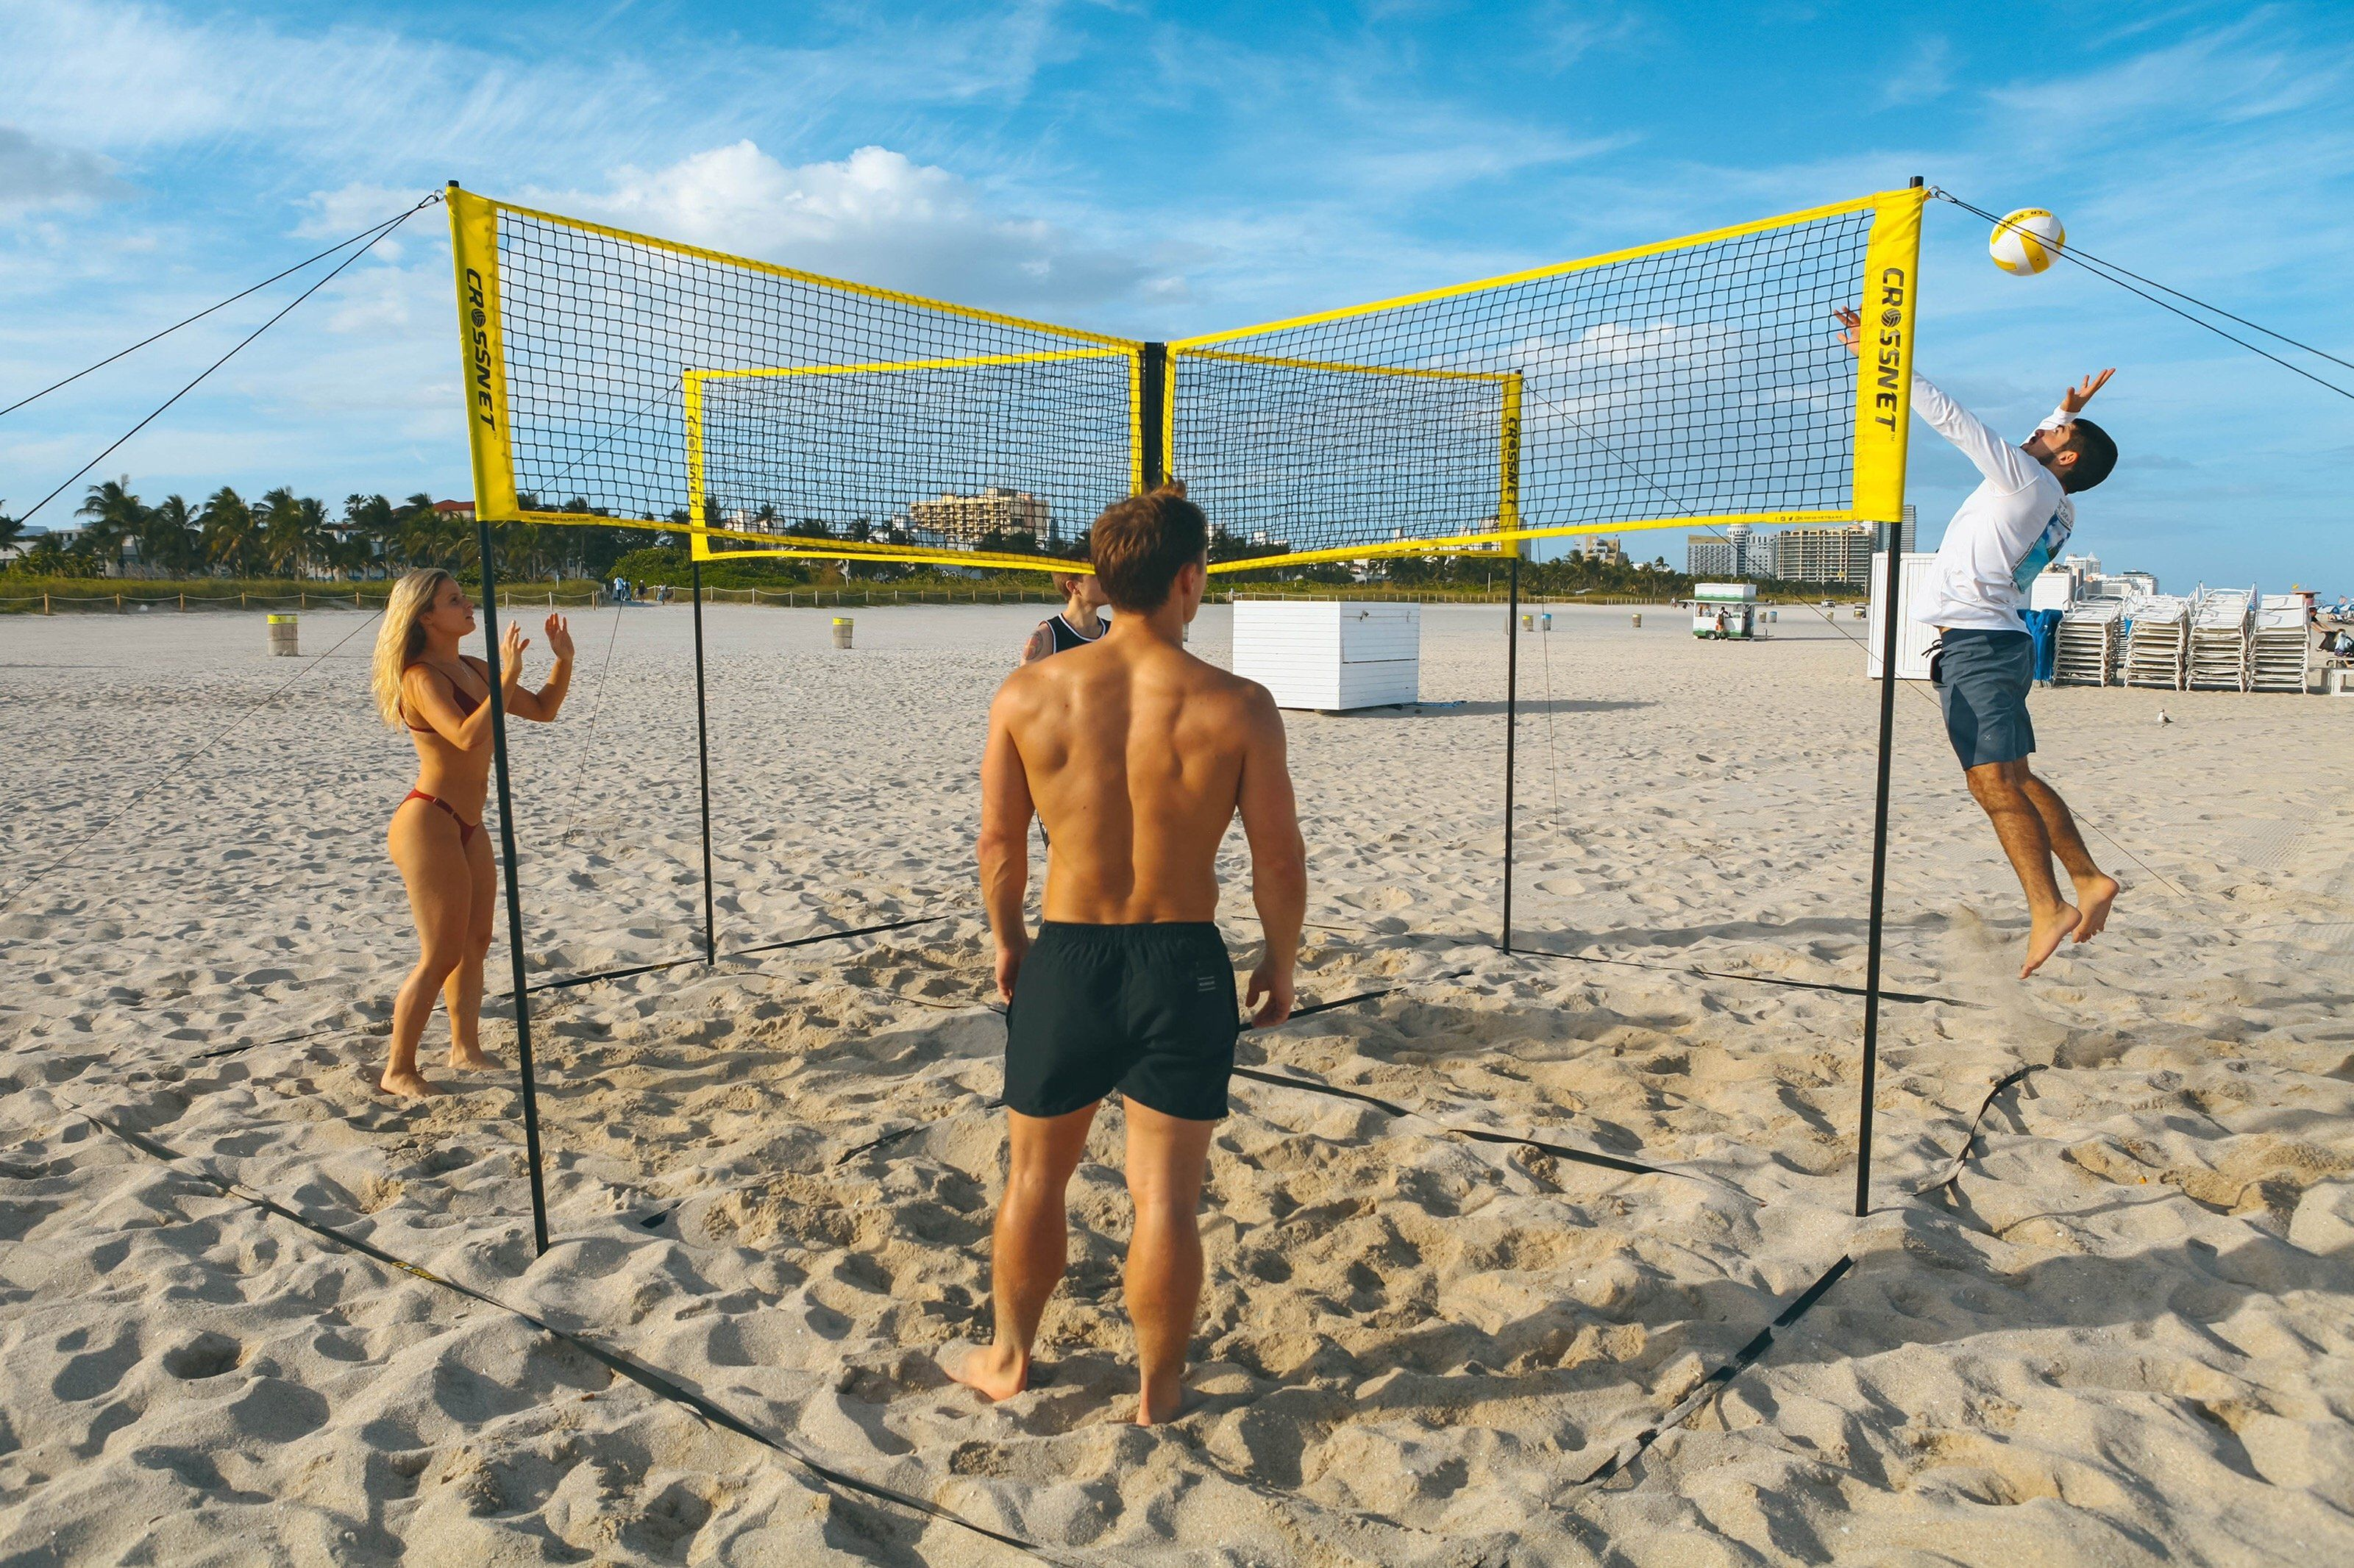 2.0 Volleyball, Four square, Volleyball skills